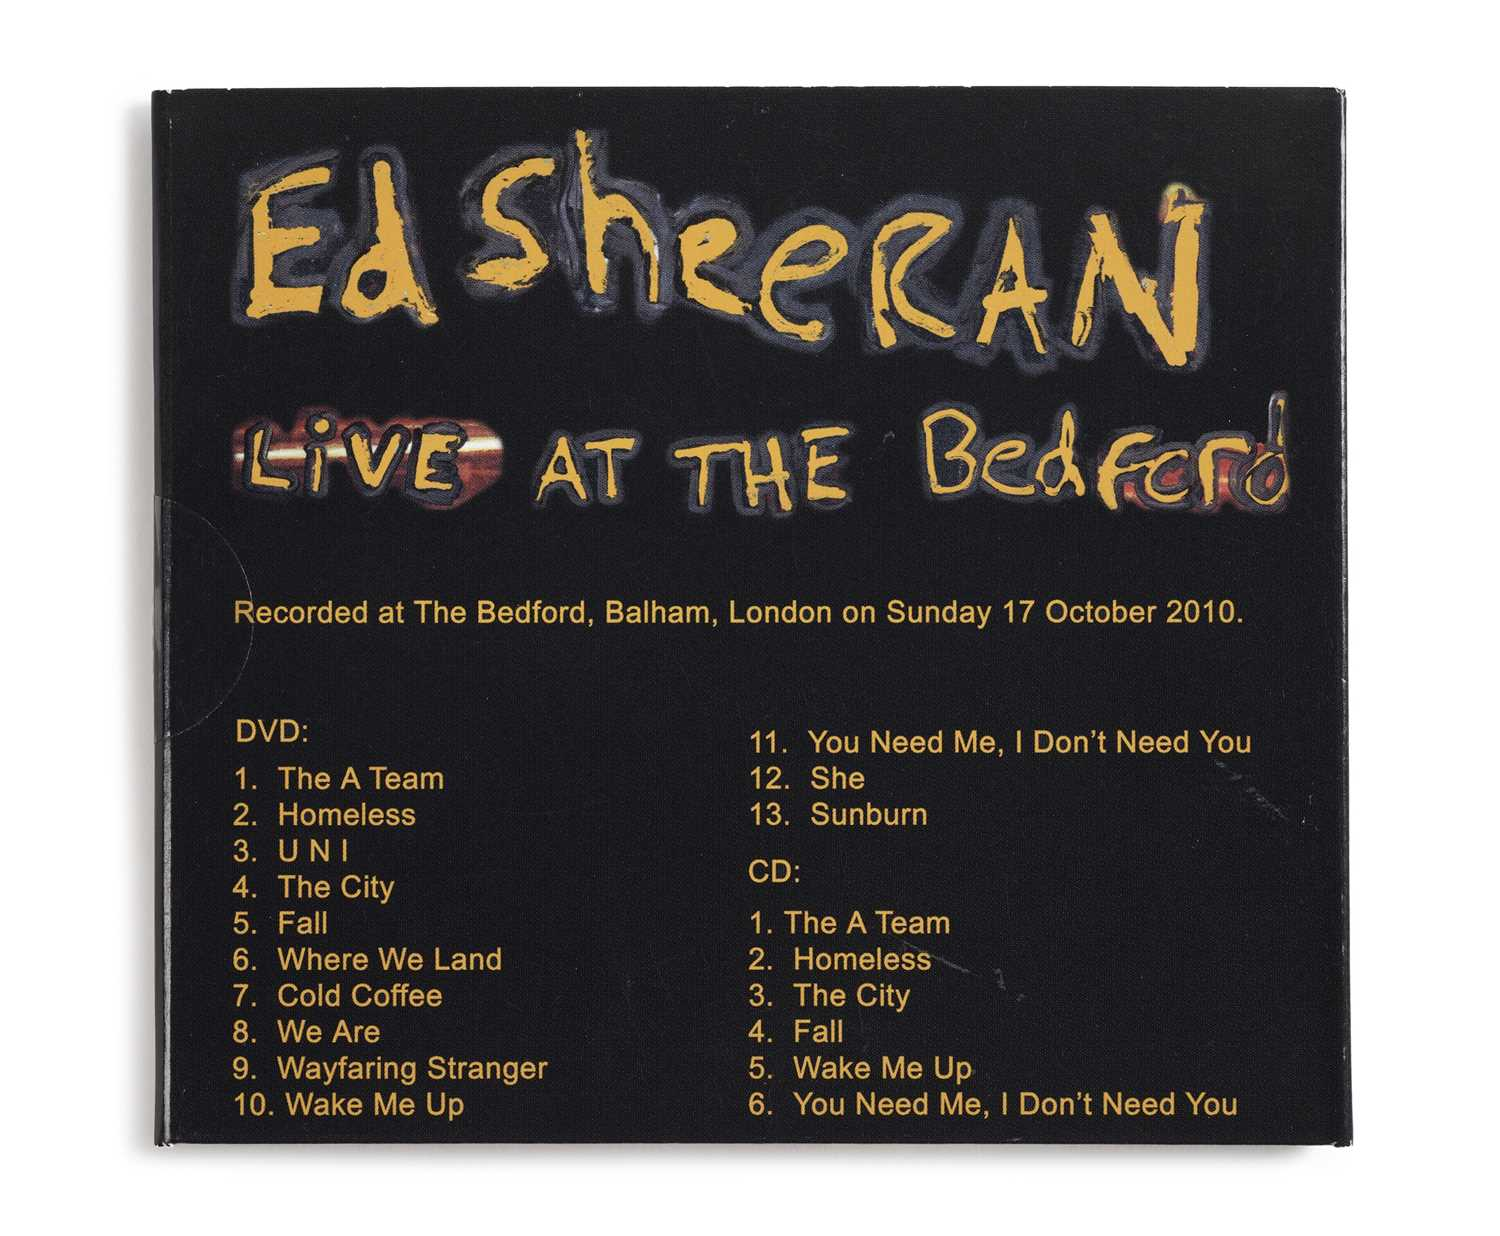 Signed Ed Sheeran Live at the Bedford CD & DVD 2010 A DVD and EP released independently by Ed - Image 2 of 2